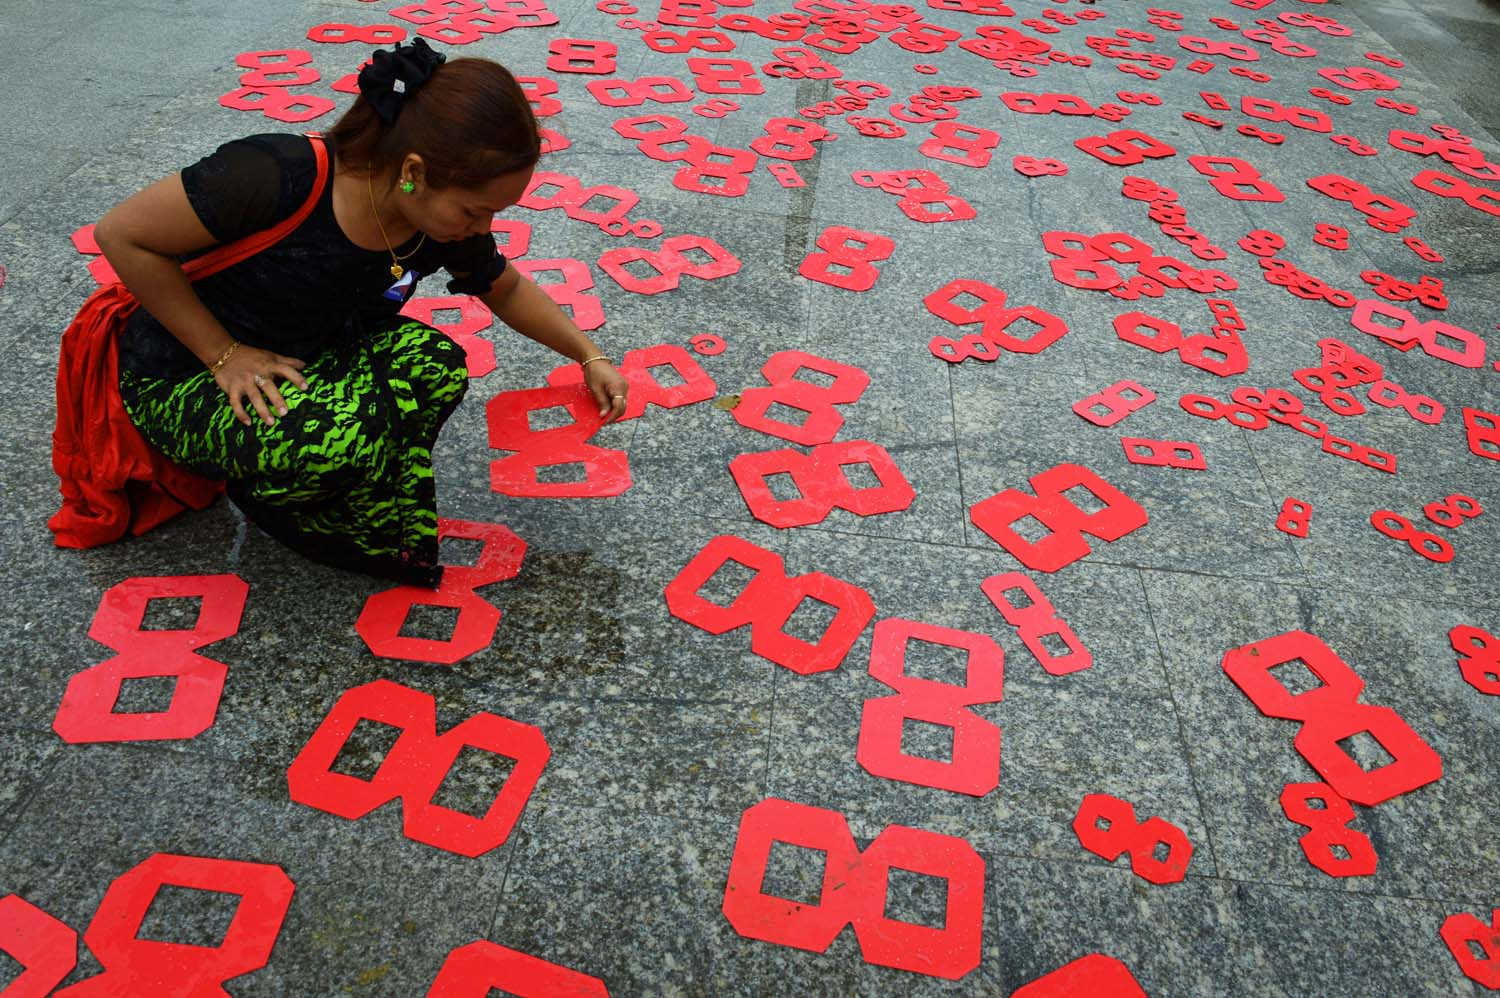 An activist places cutouts on the ground in Mahabandoola Park in Yangon on August 8, 2016 to mark the 28th anniversary of a general strike, one of the key events of the 1988 uprising. (AFP)